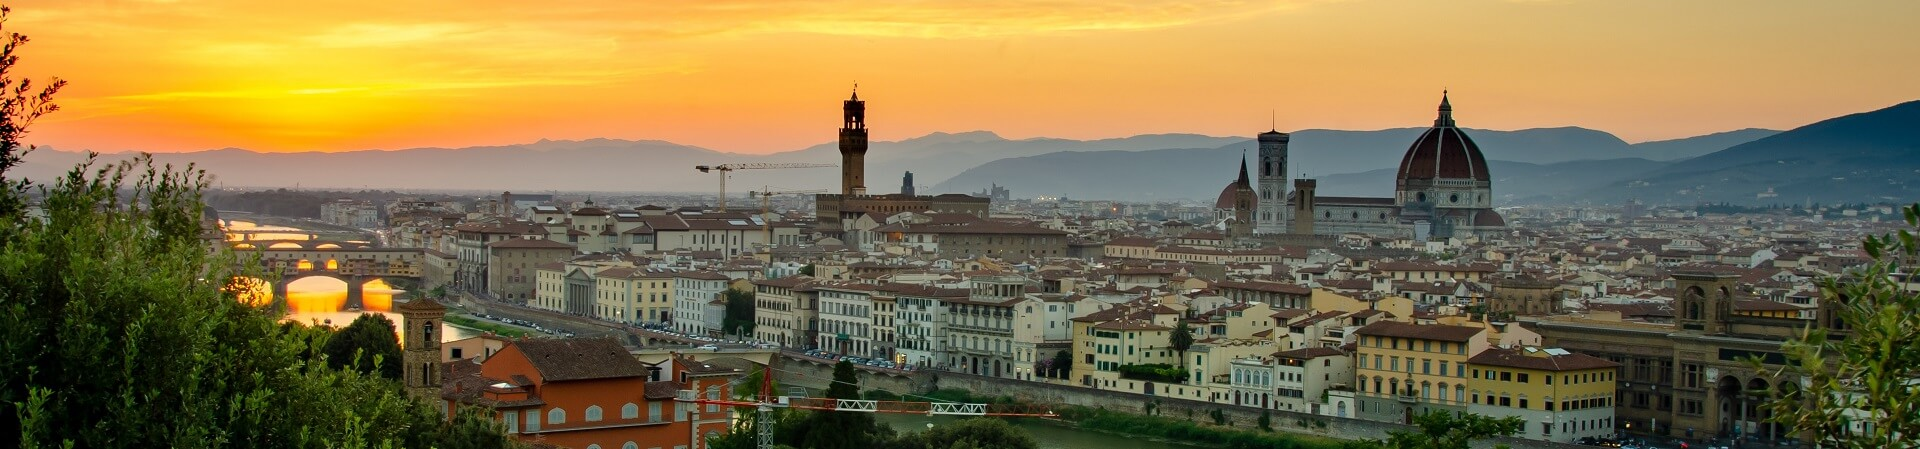 What should I not miss in Florence, Italy?